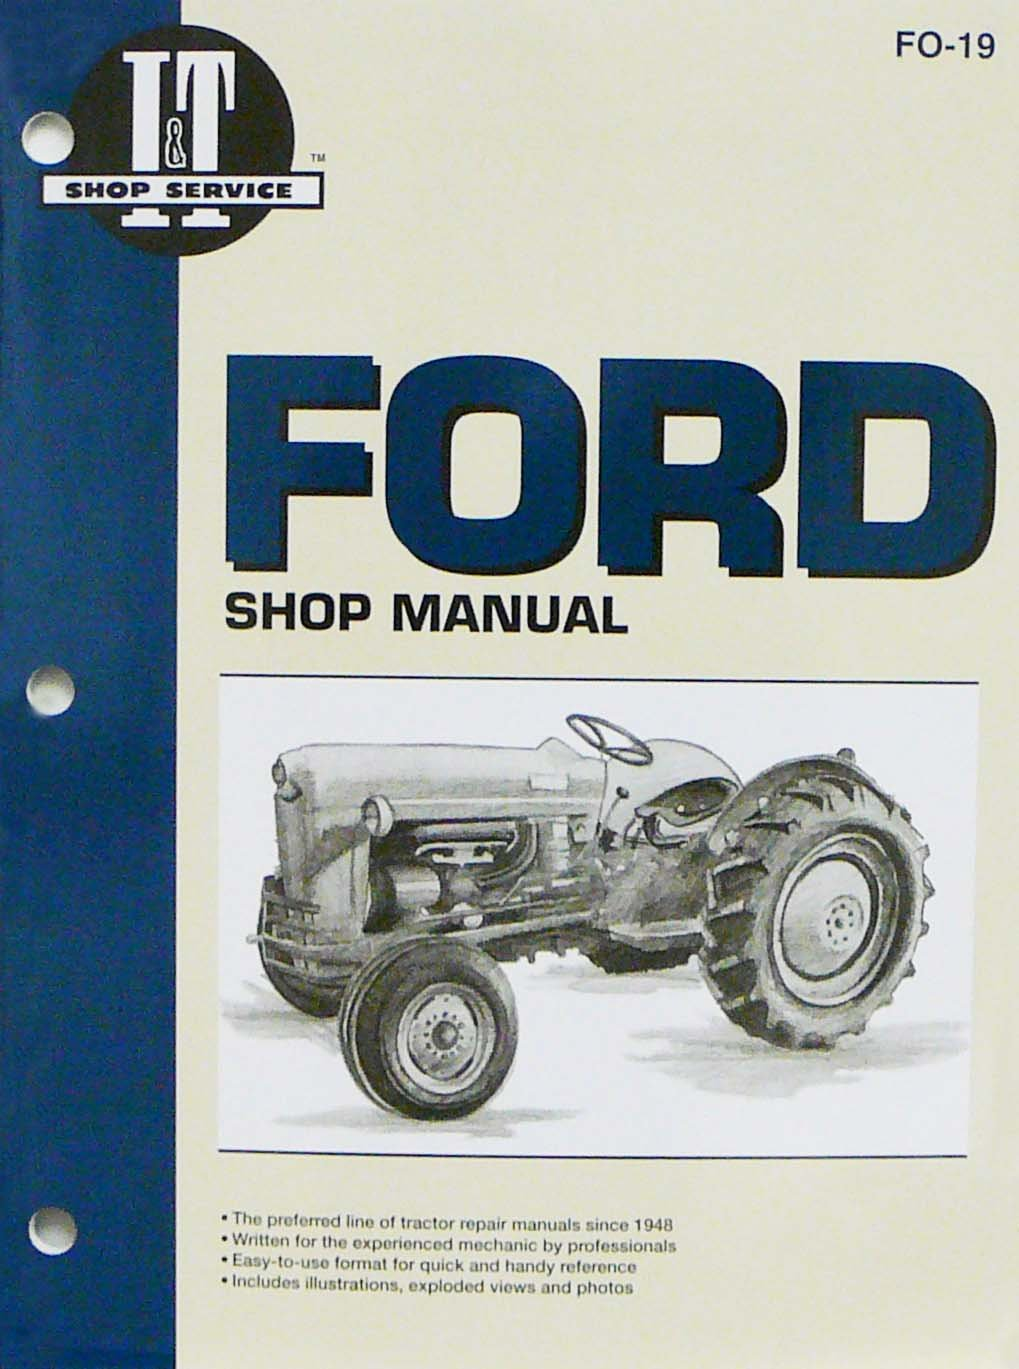 Amazon.com : Sparex FO19 - I&T Tractor Service/Repair Manual - Ford  Tractors NAA : Agricultural Machinery Accessories : Garden & Outdoor